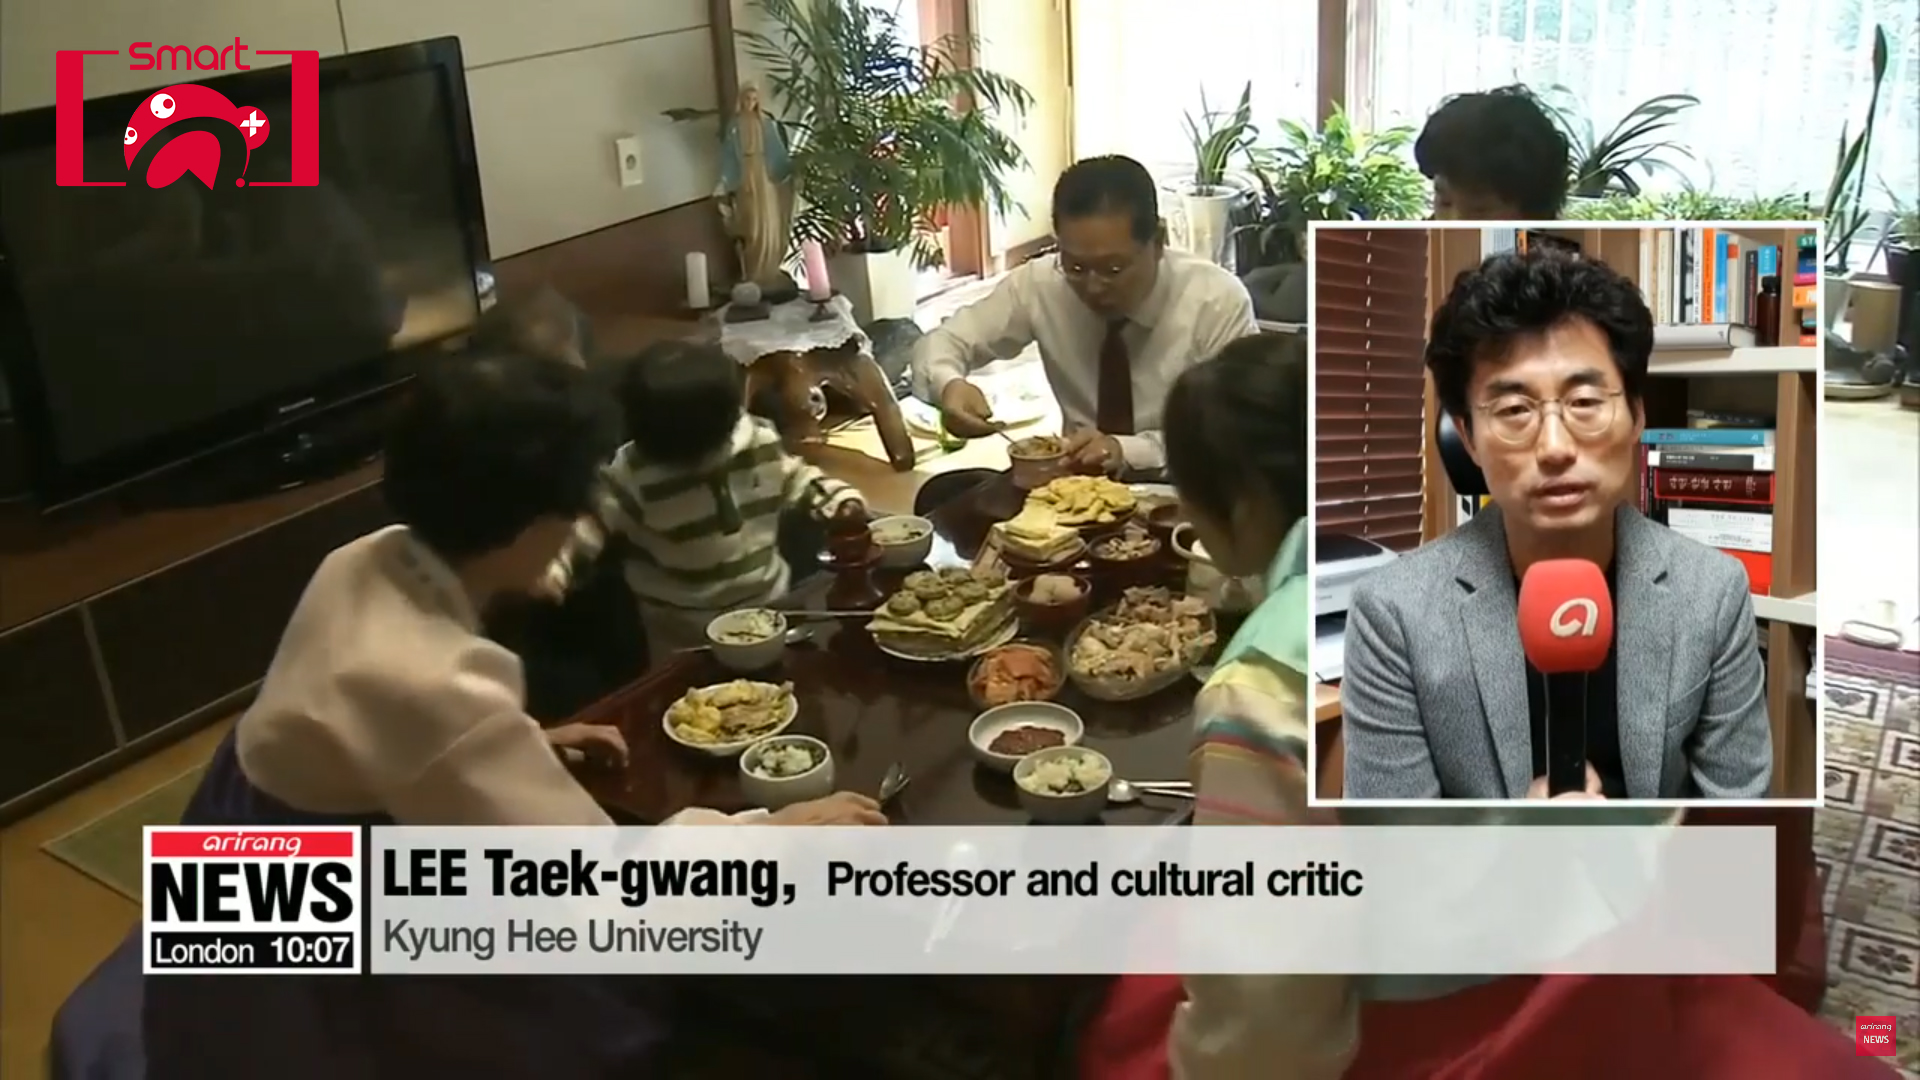 [Smart A+] Many S. Koreans stressed out by Chuseok holiday